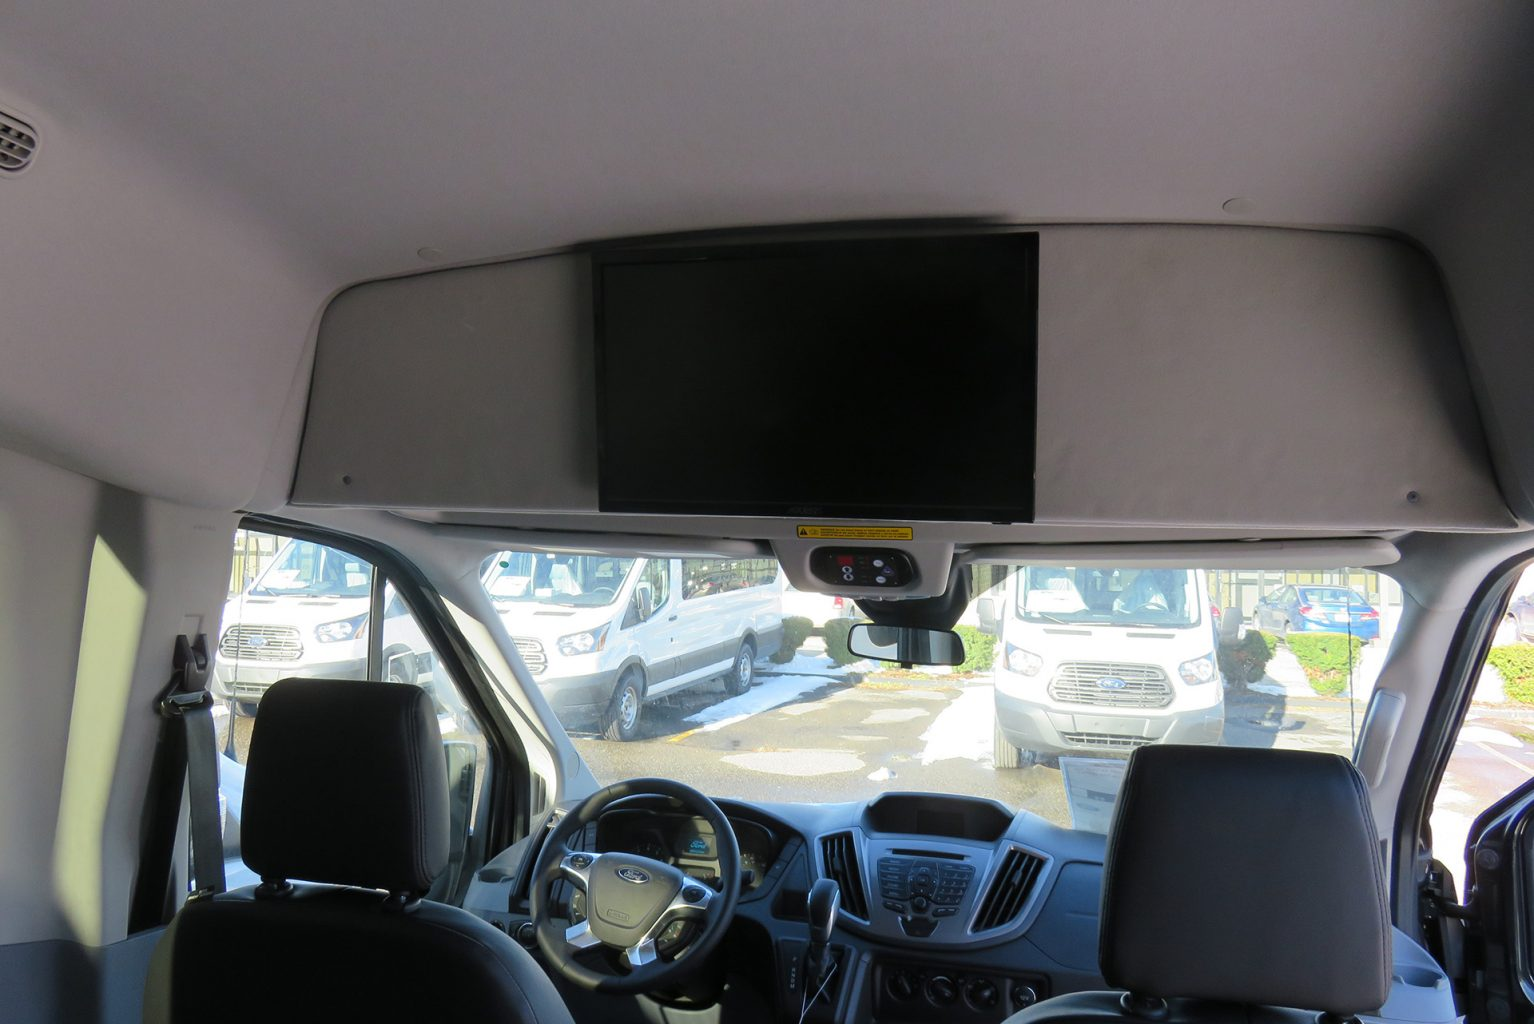 Van with ceiling mounted tv